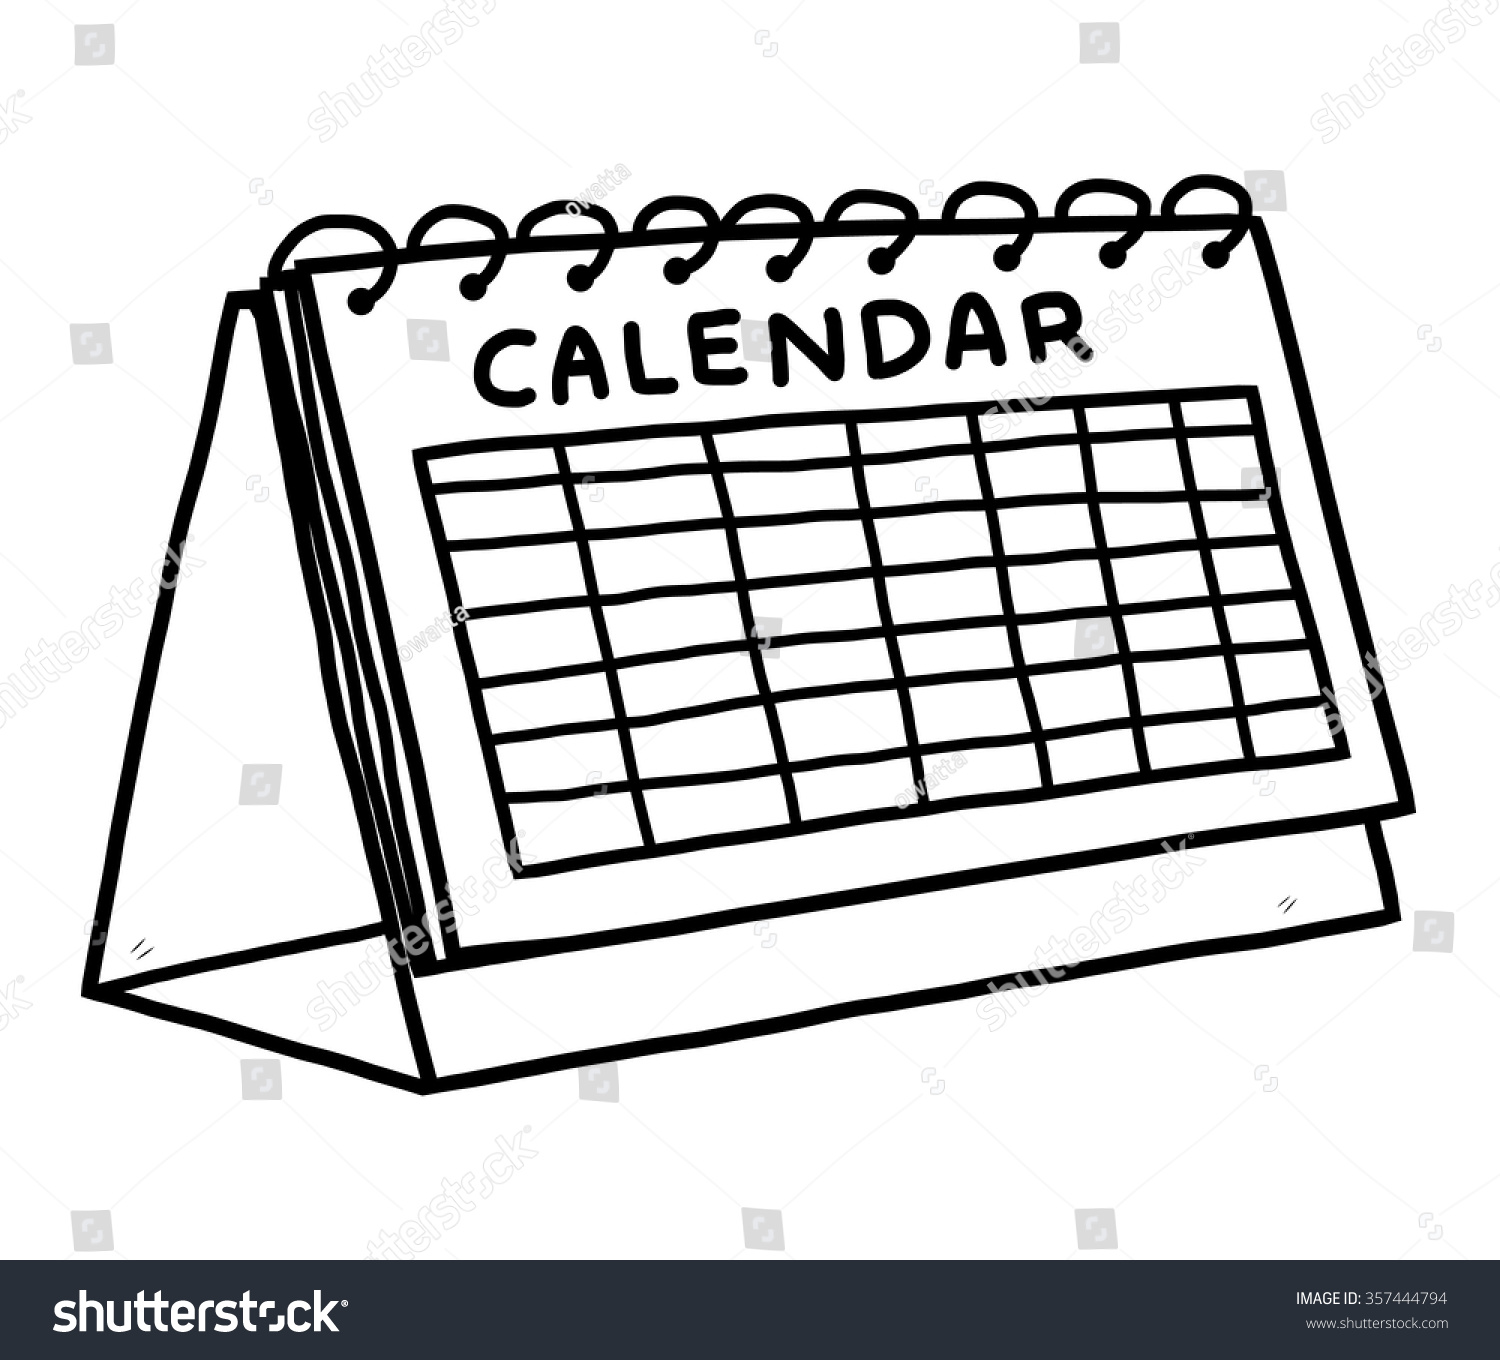 Calendar Vector Art : Calendar cartoon vector illustration black white stock